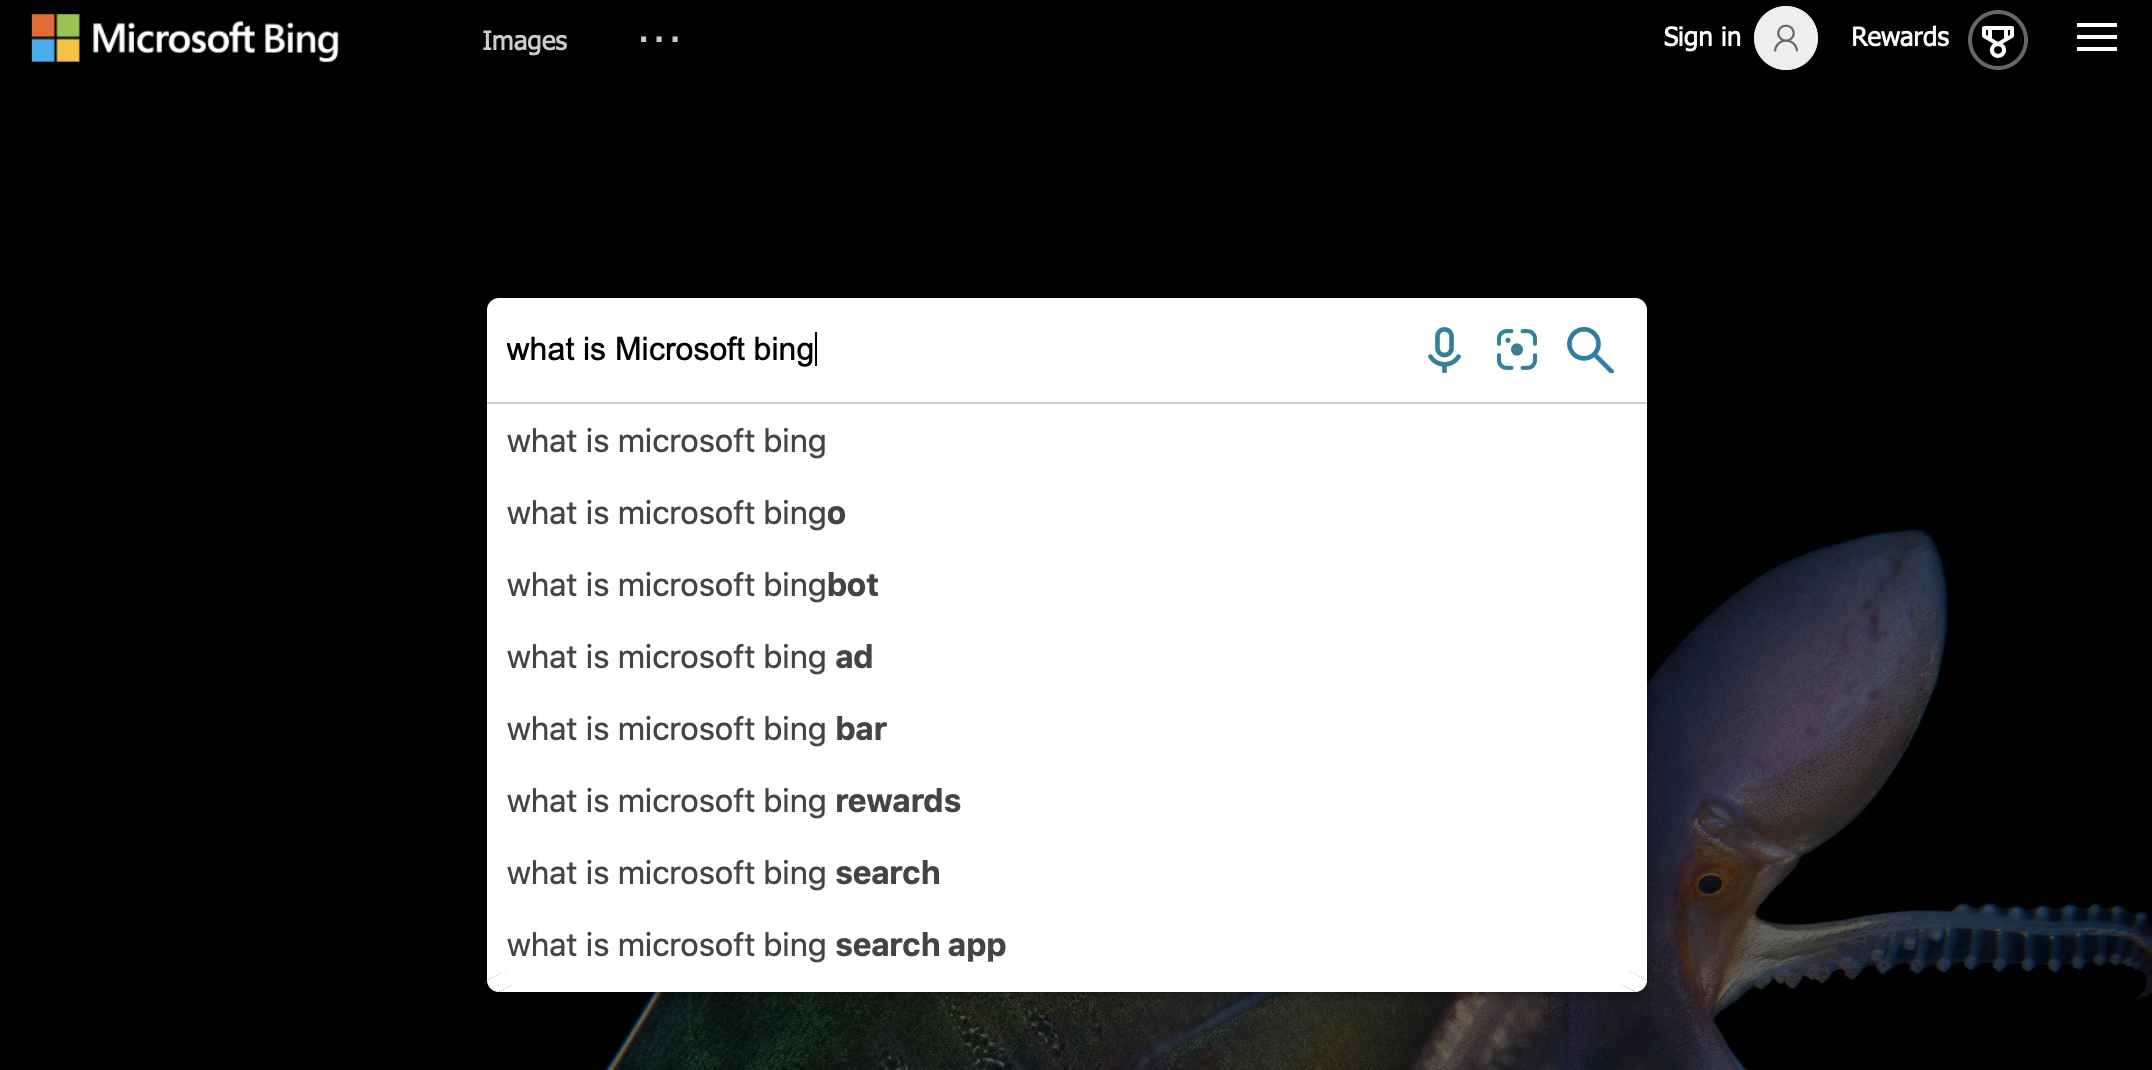 what is microsoft bing